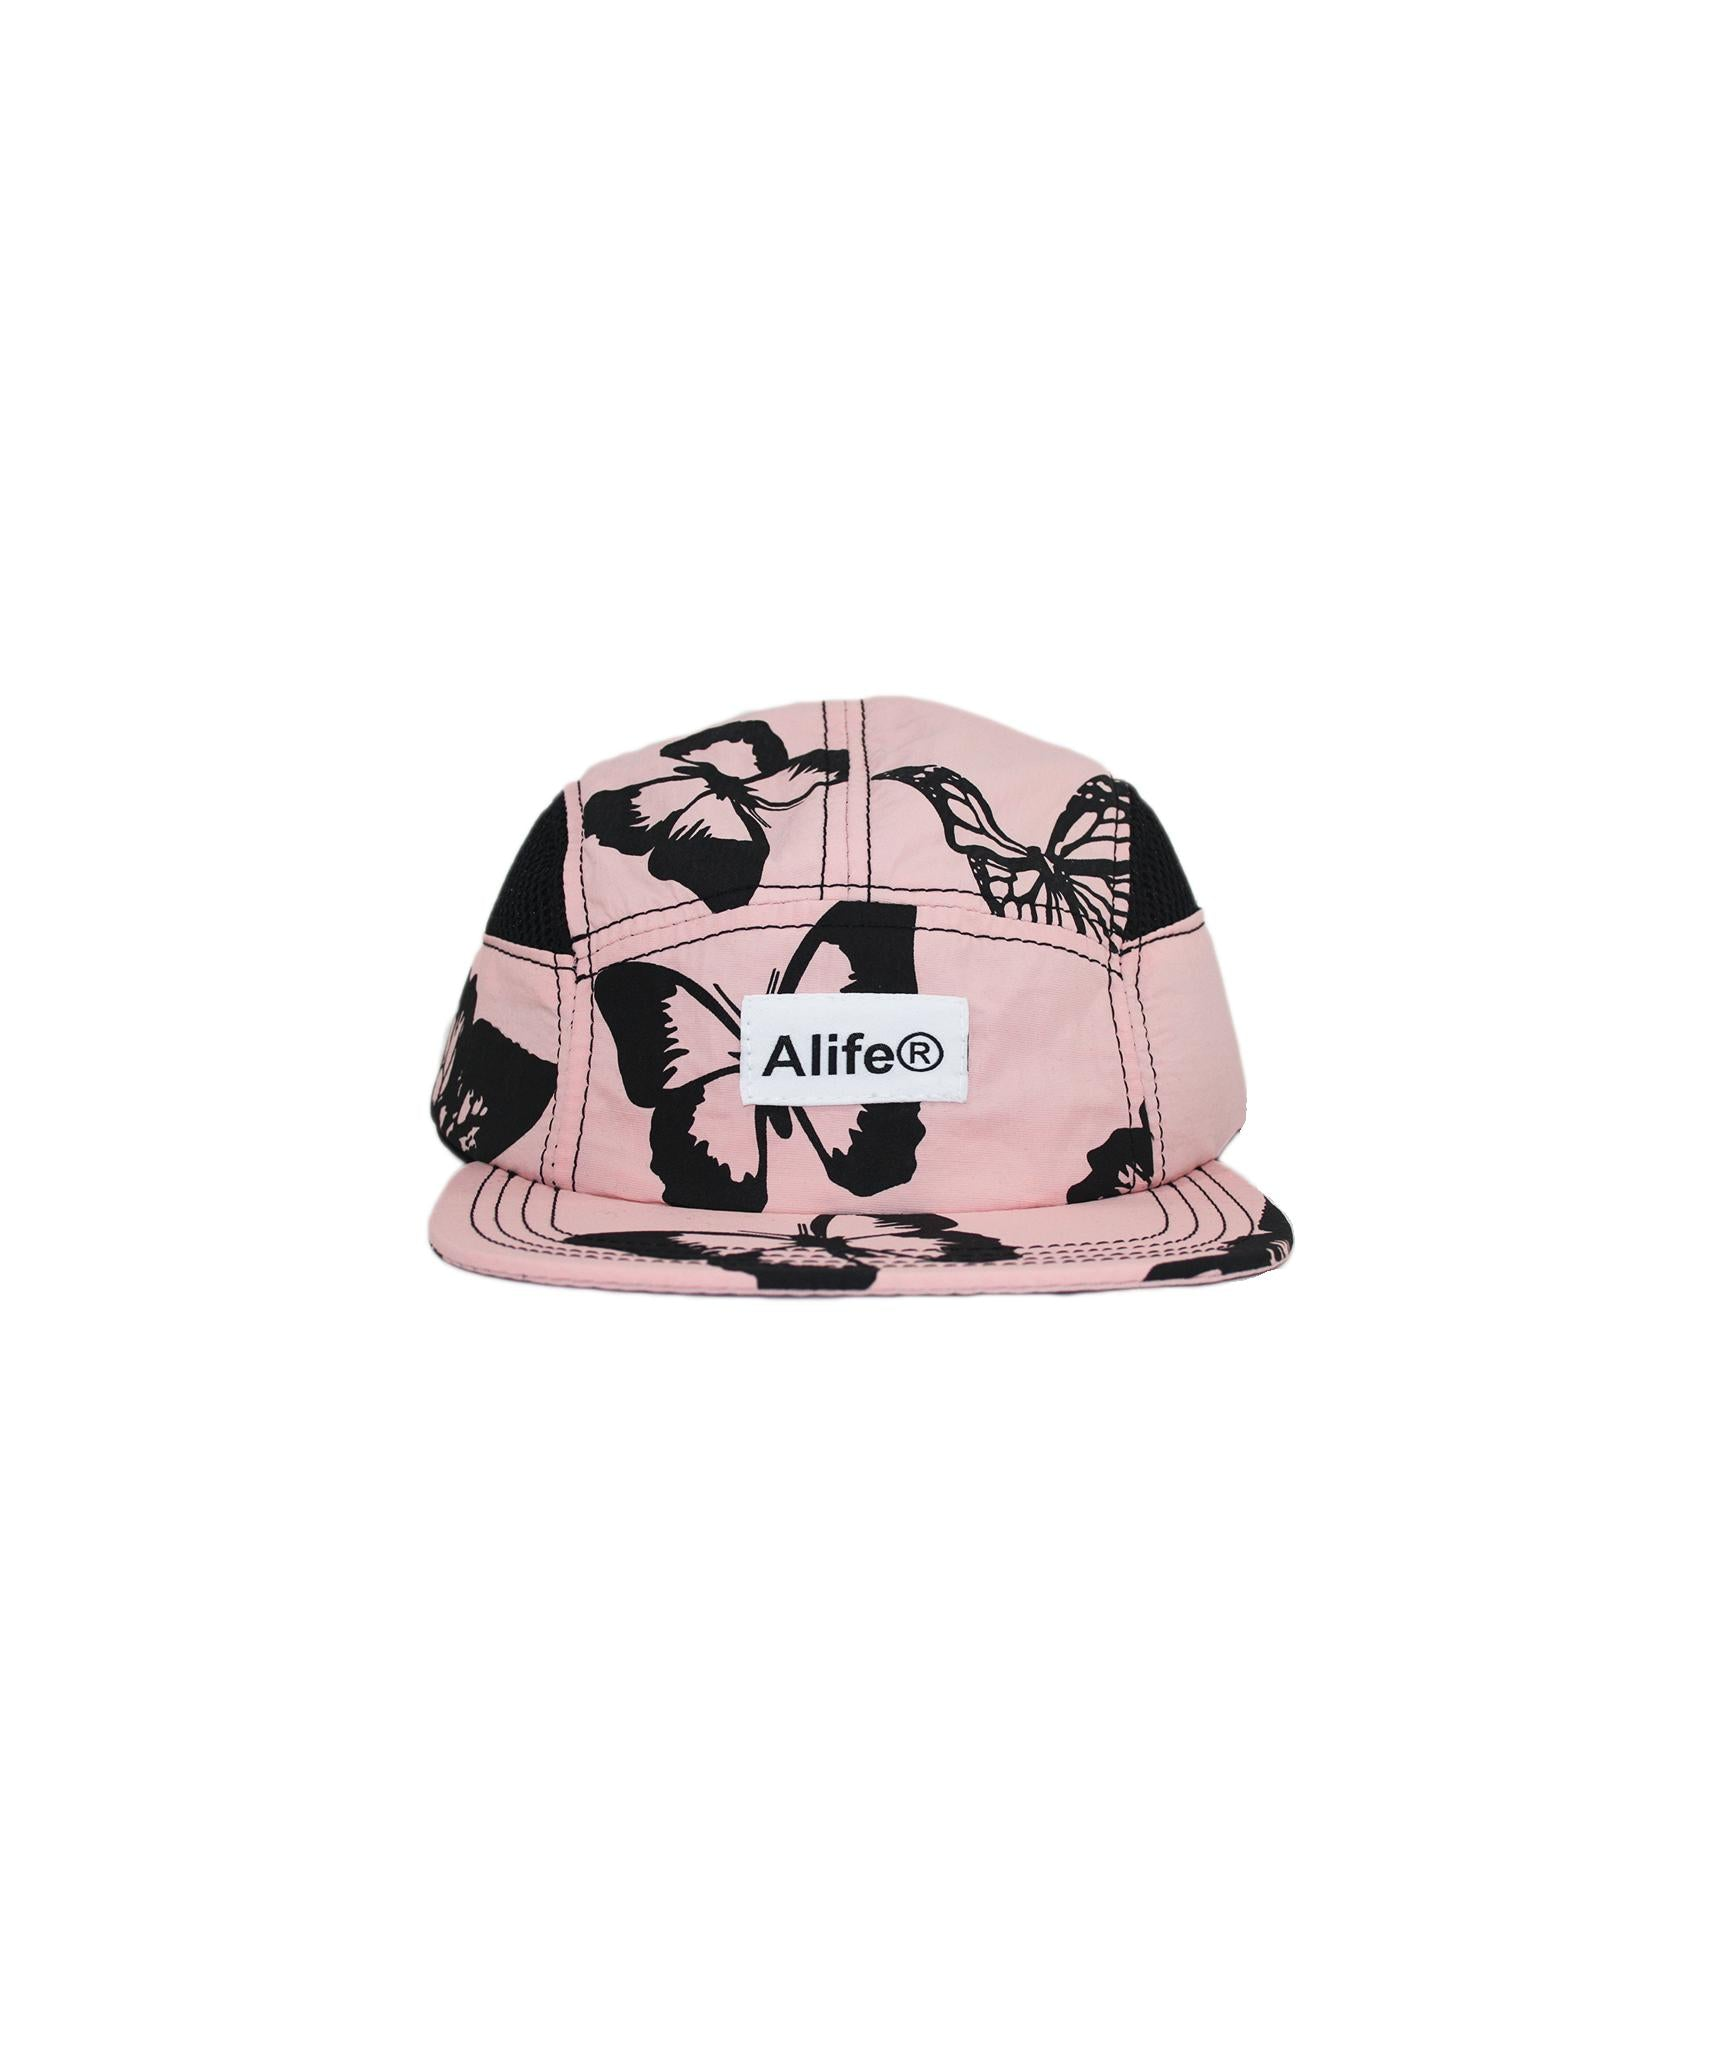 Alife Upcycle Hat - Butterfly - Pink/Black